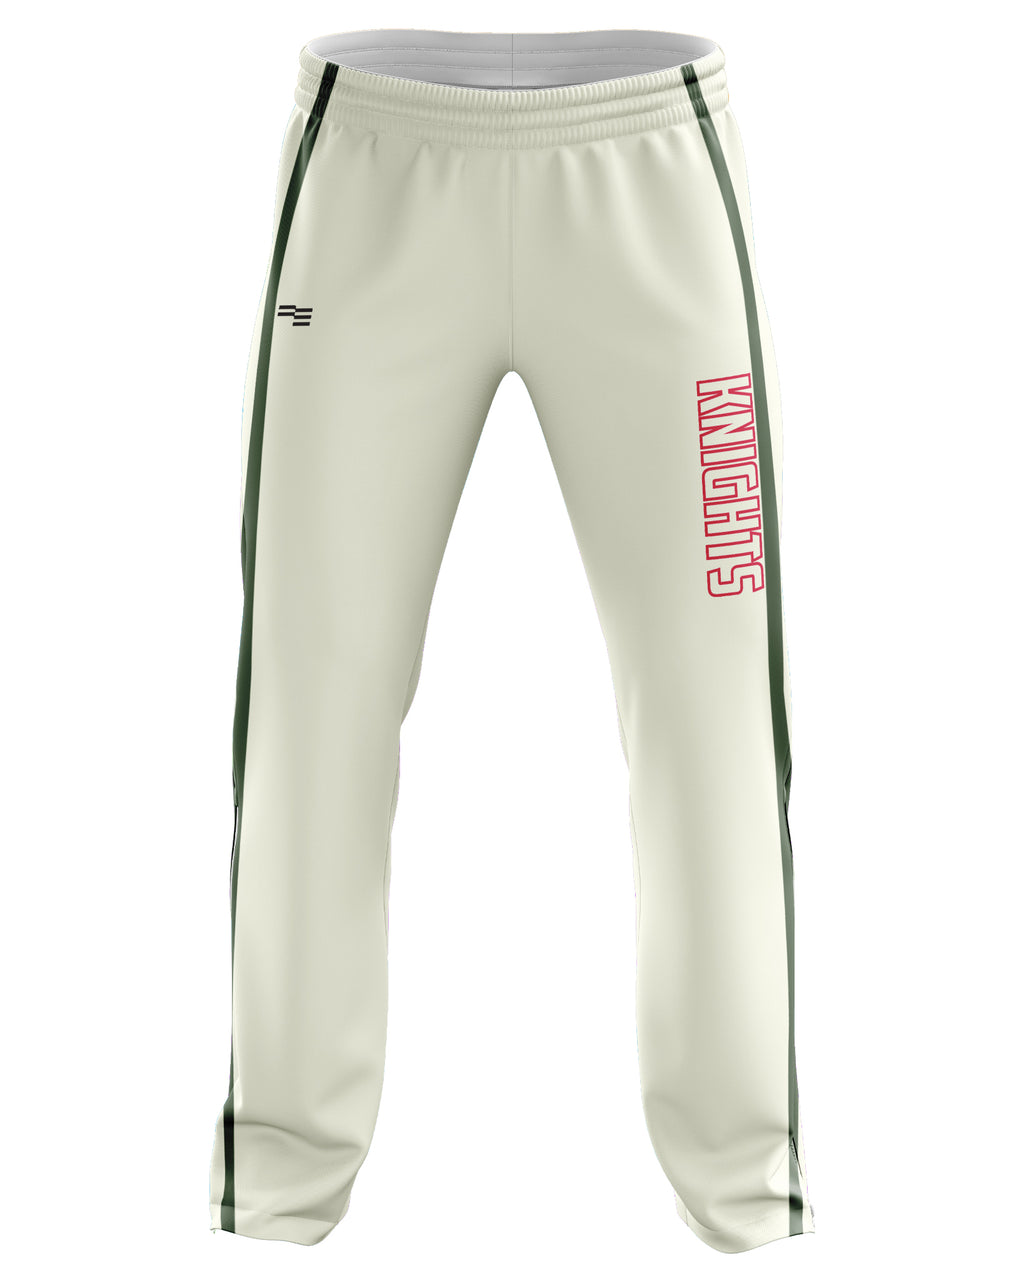 Knights Cricket Pants - Mens